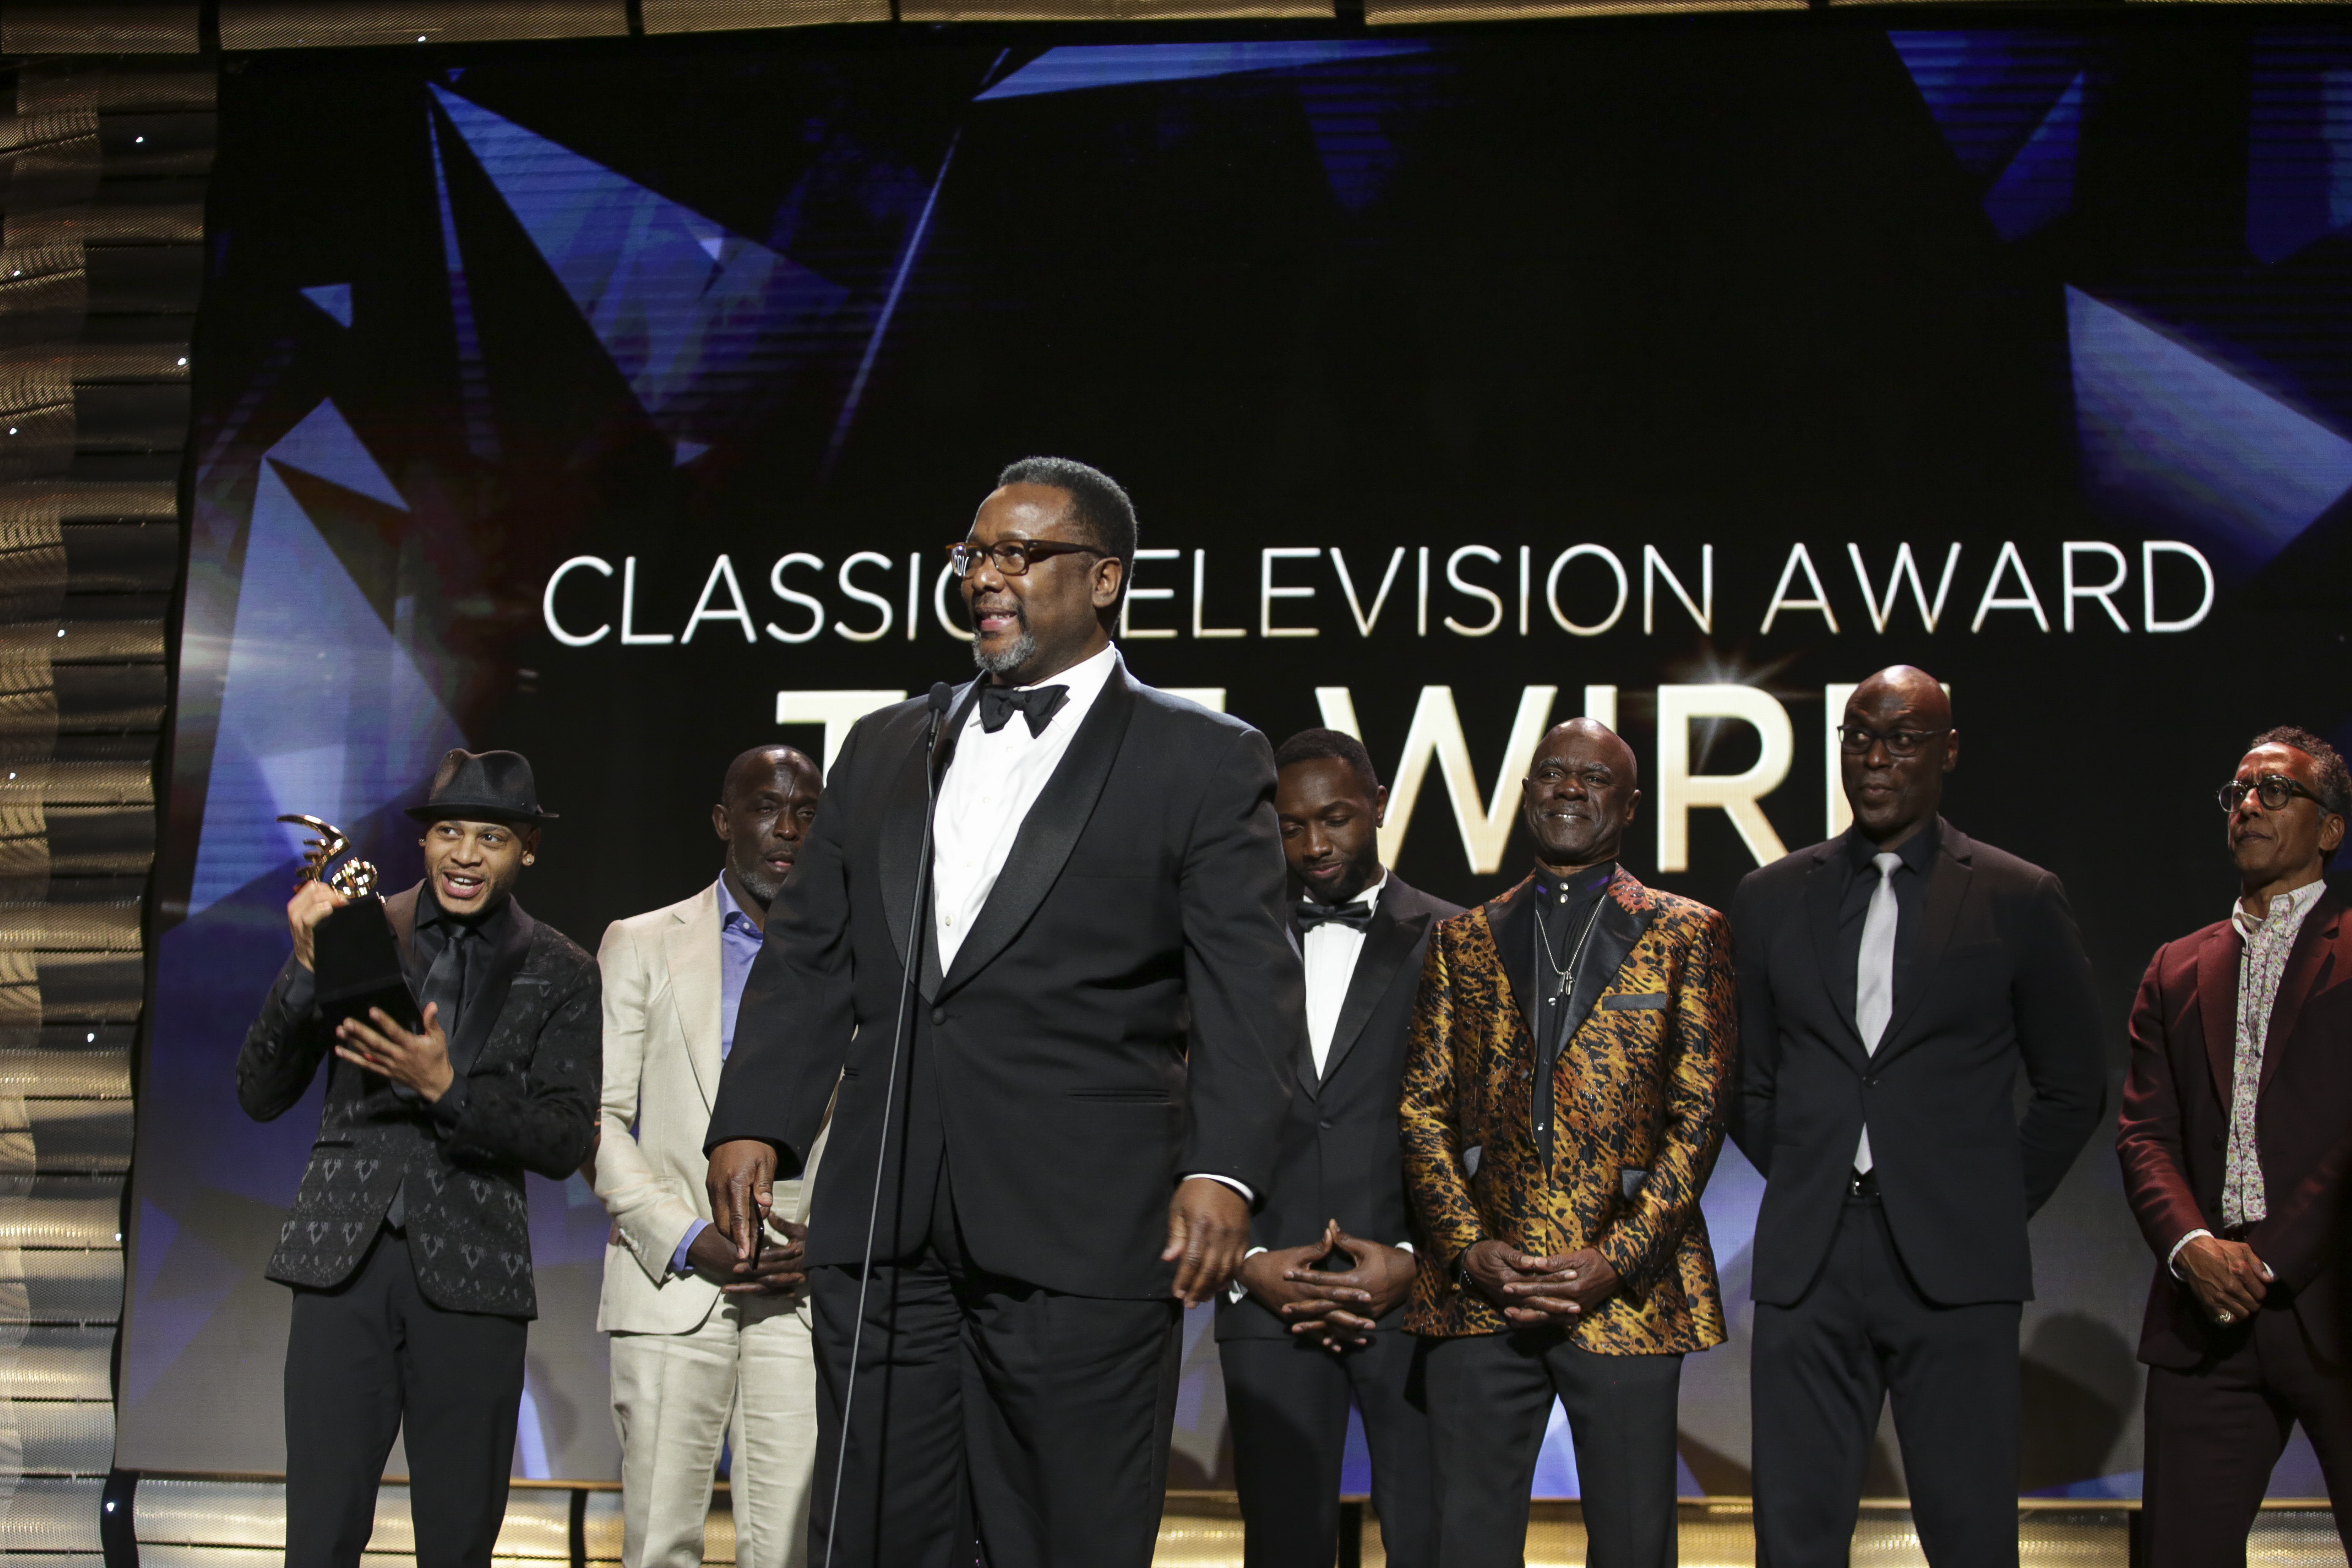 Wendell Pierce and cast of The Wire 4th Annual American Black Film Festival Honors Awards